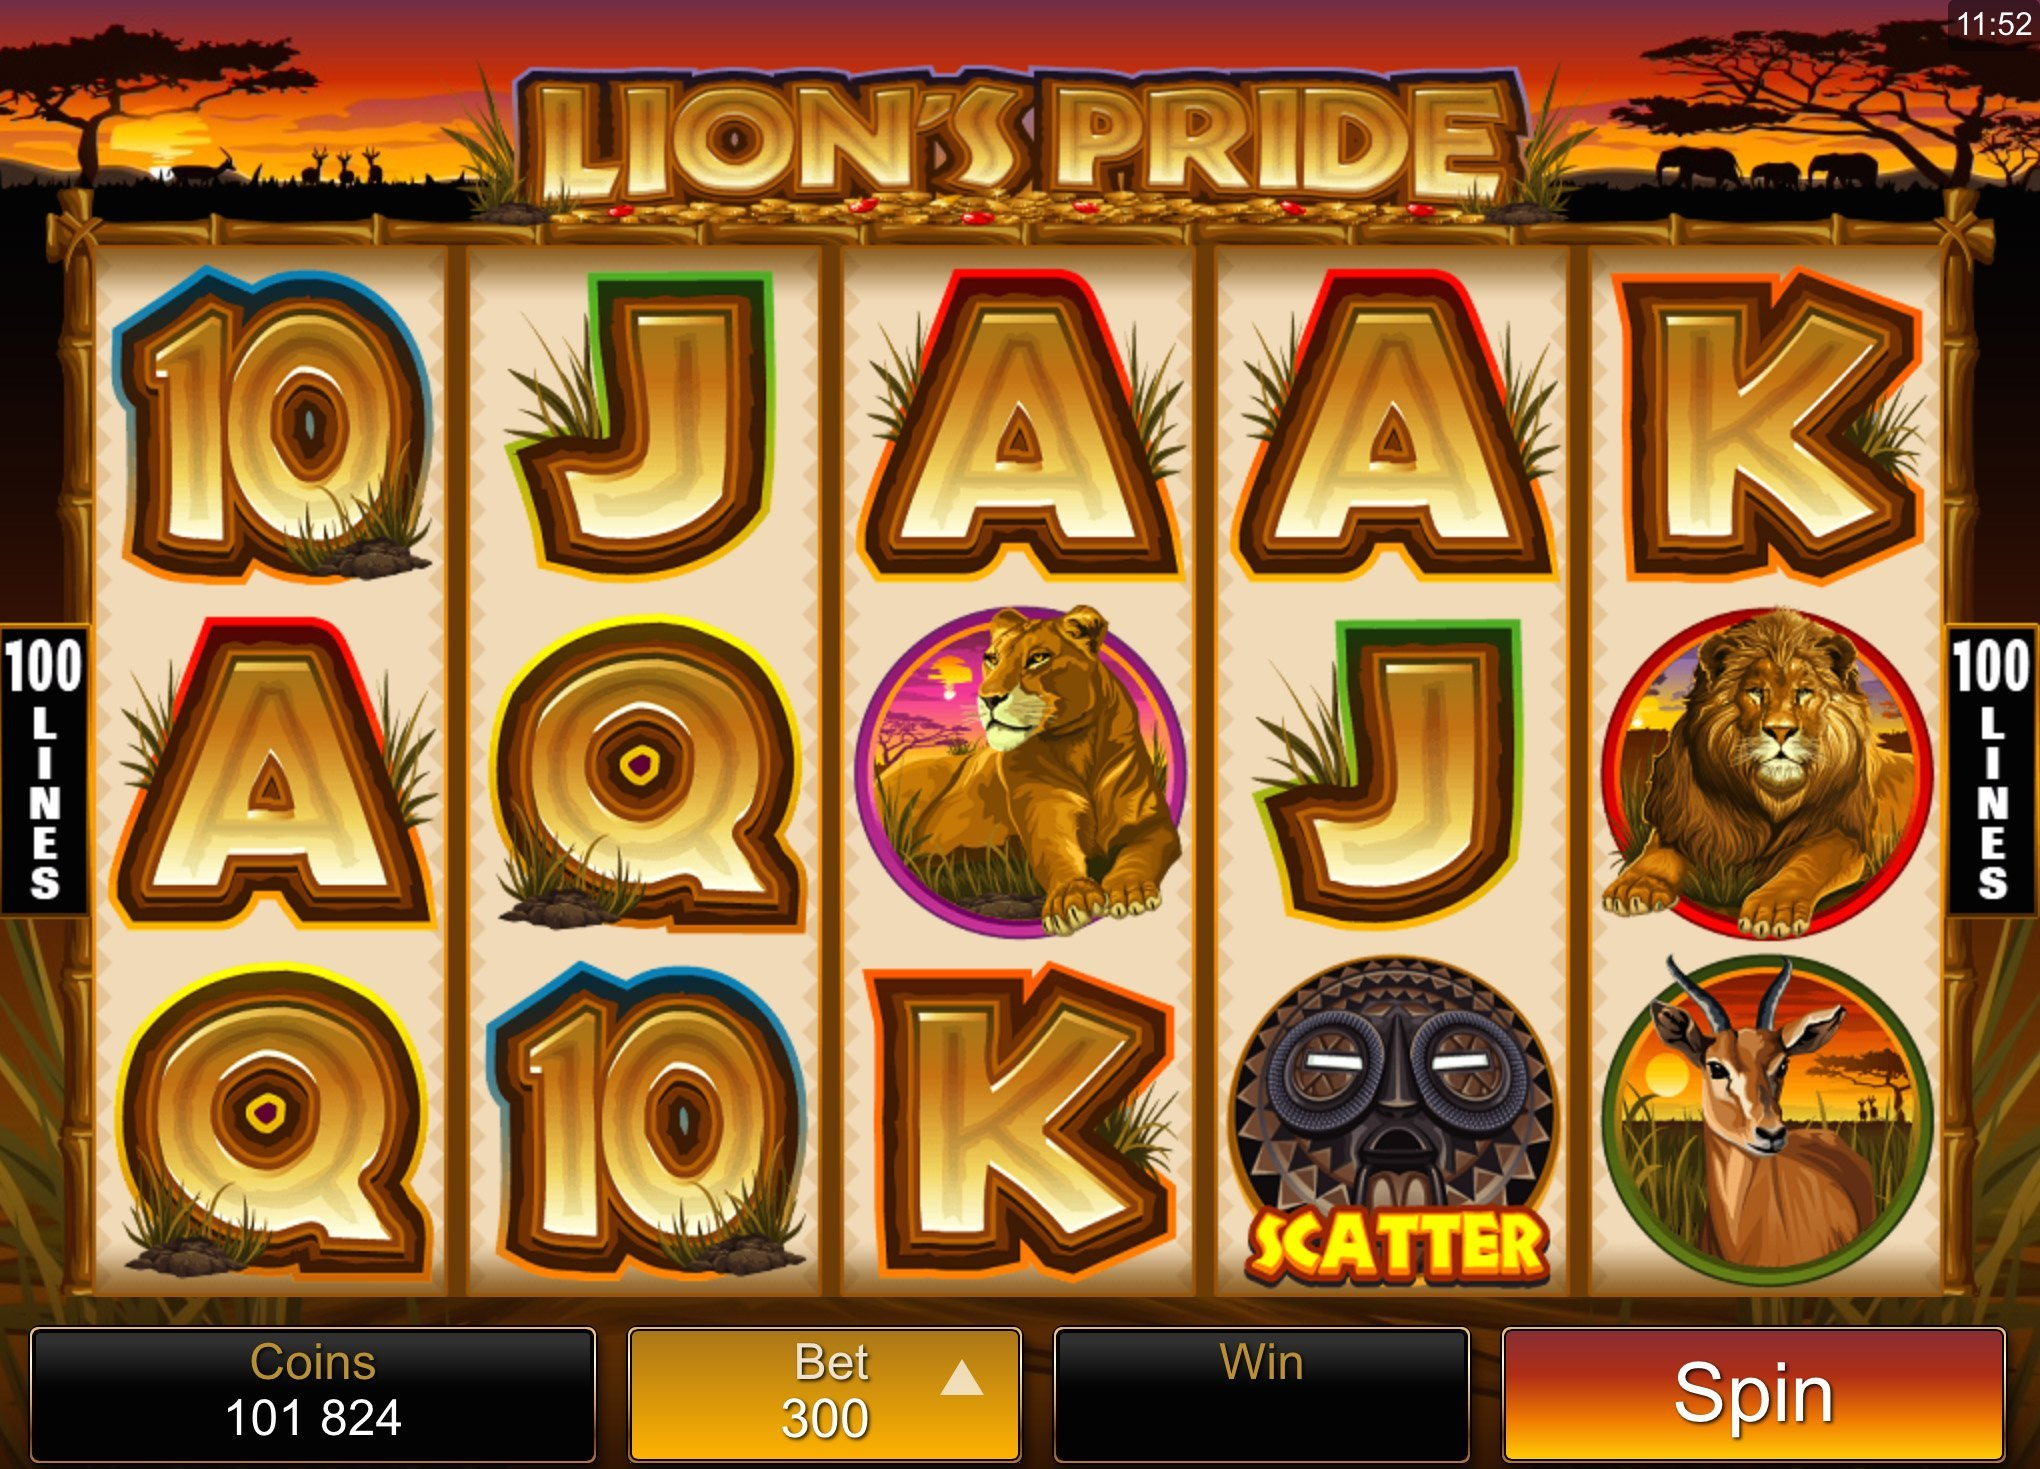 Lions Pride Slot Review